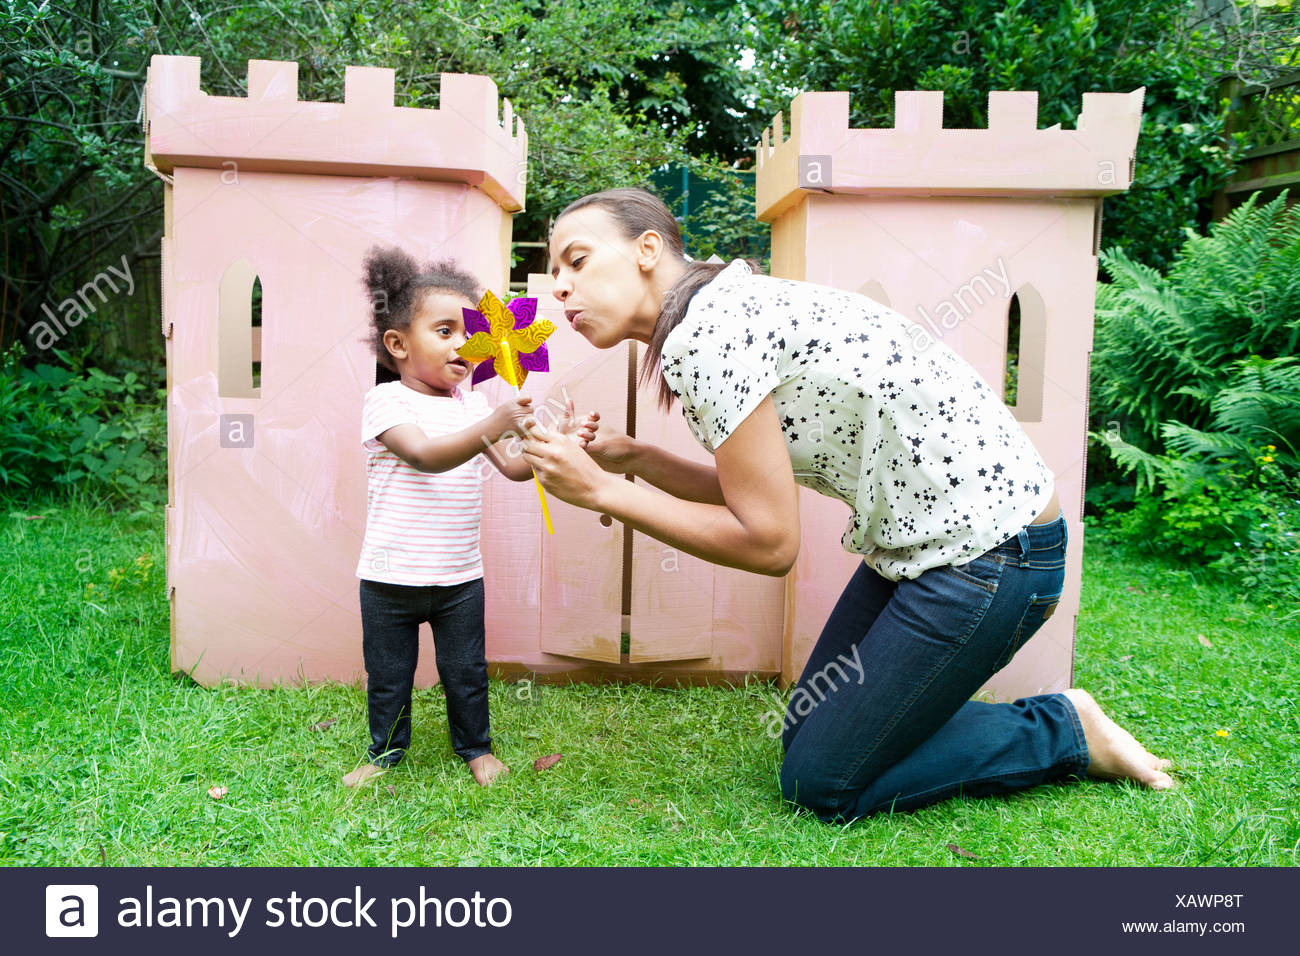 Mother and daughter blowing pinwheel - Stock Image